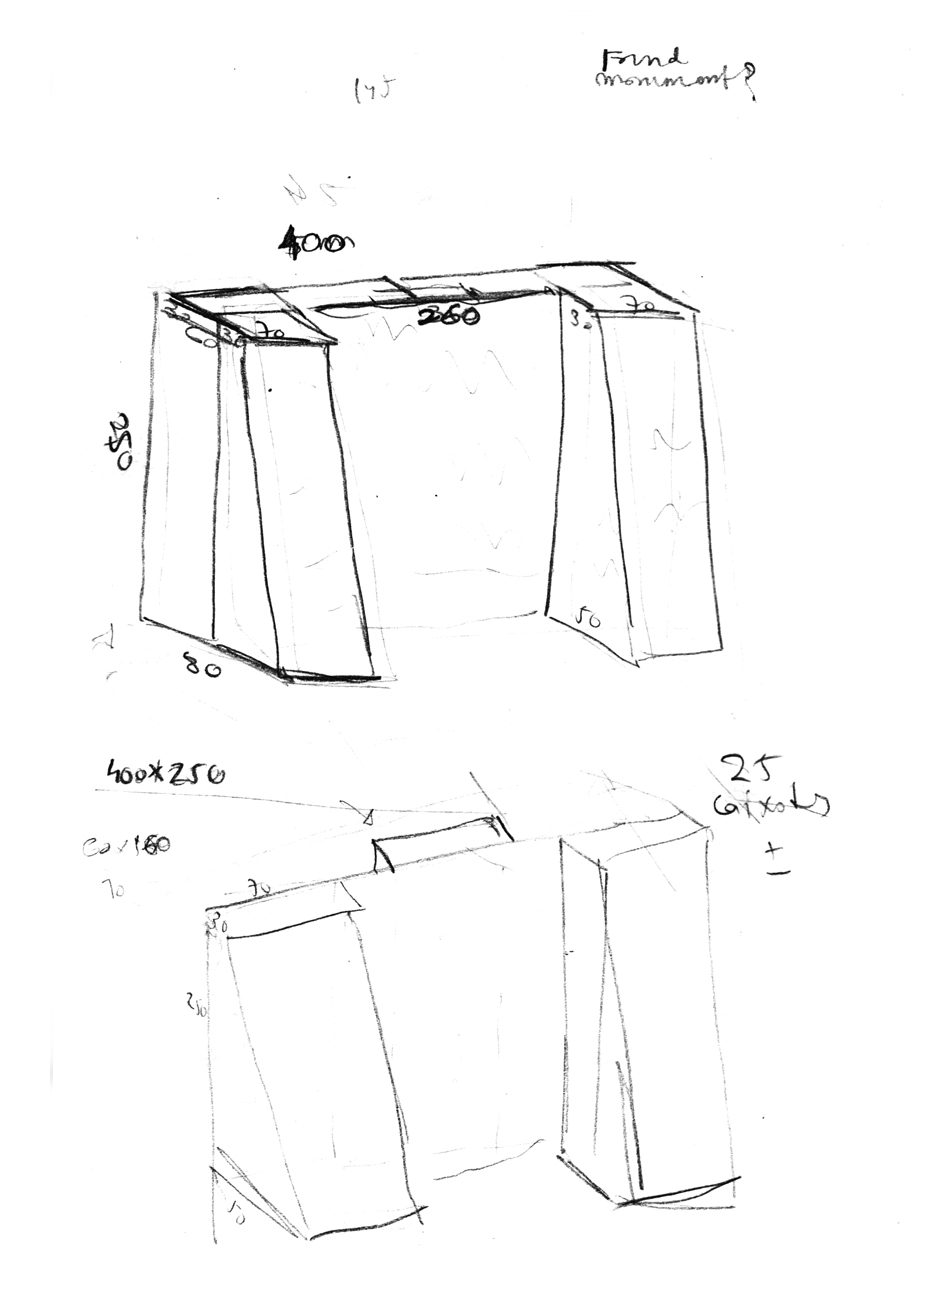 sketch with piece dimensions